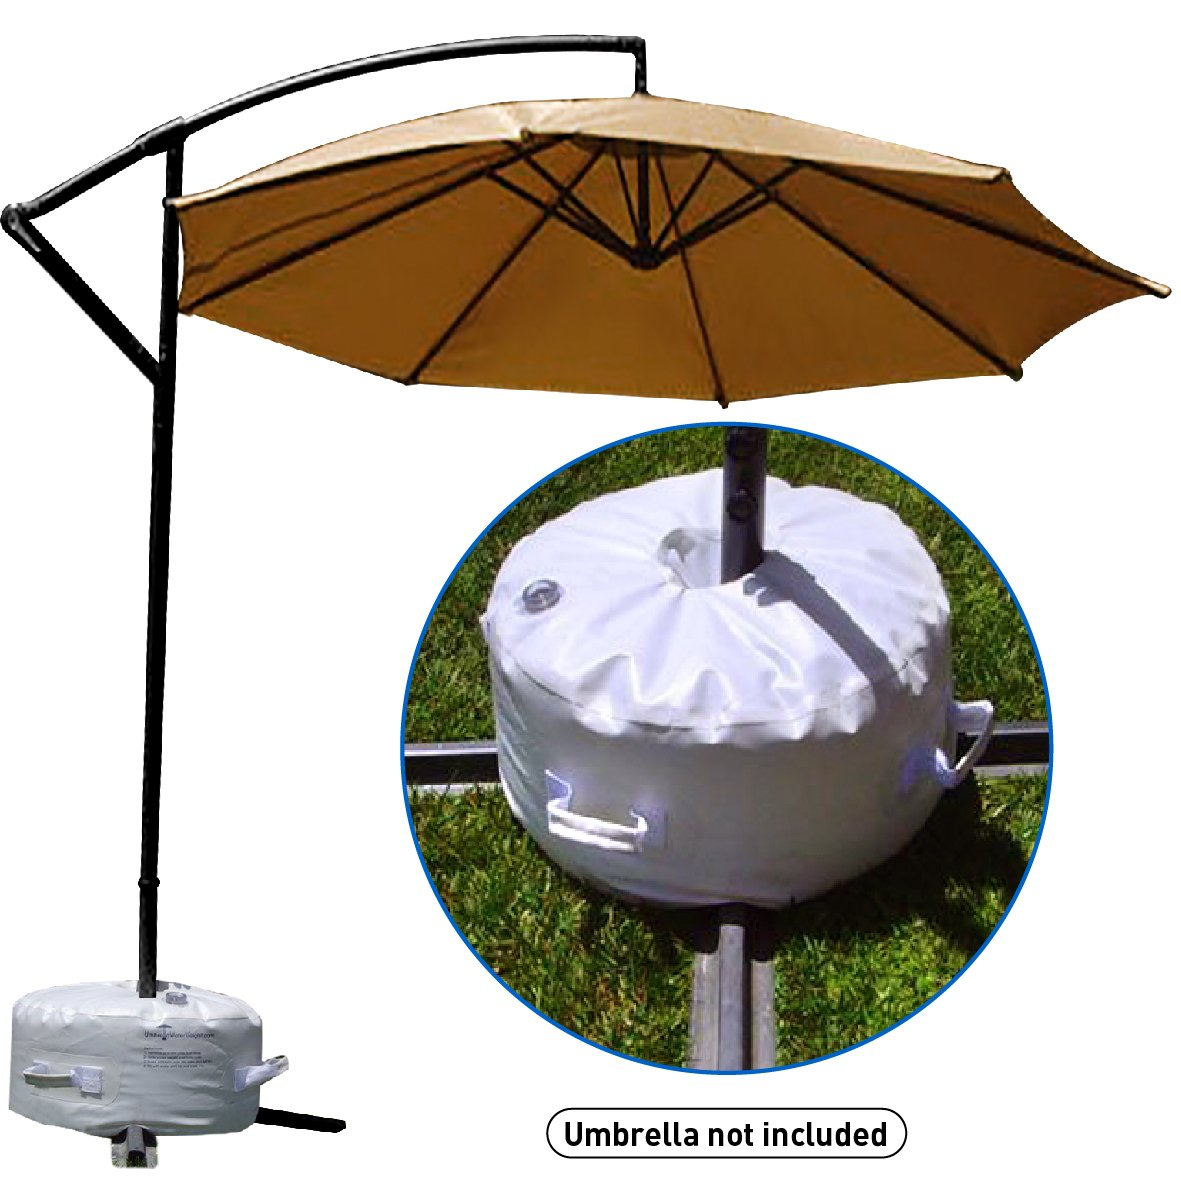 EasyGO Products Offset Umbrella Base Stand Weight – Works Also for Market Umbrella White